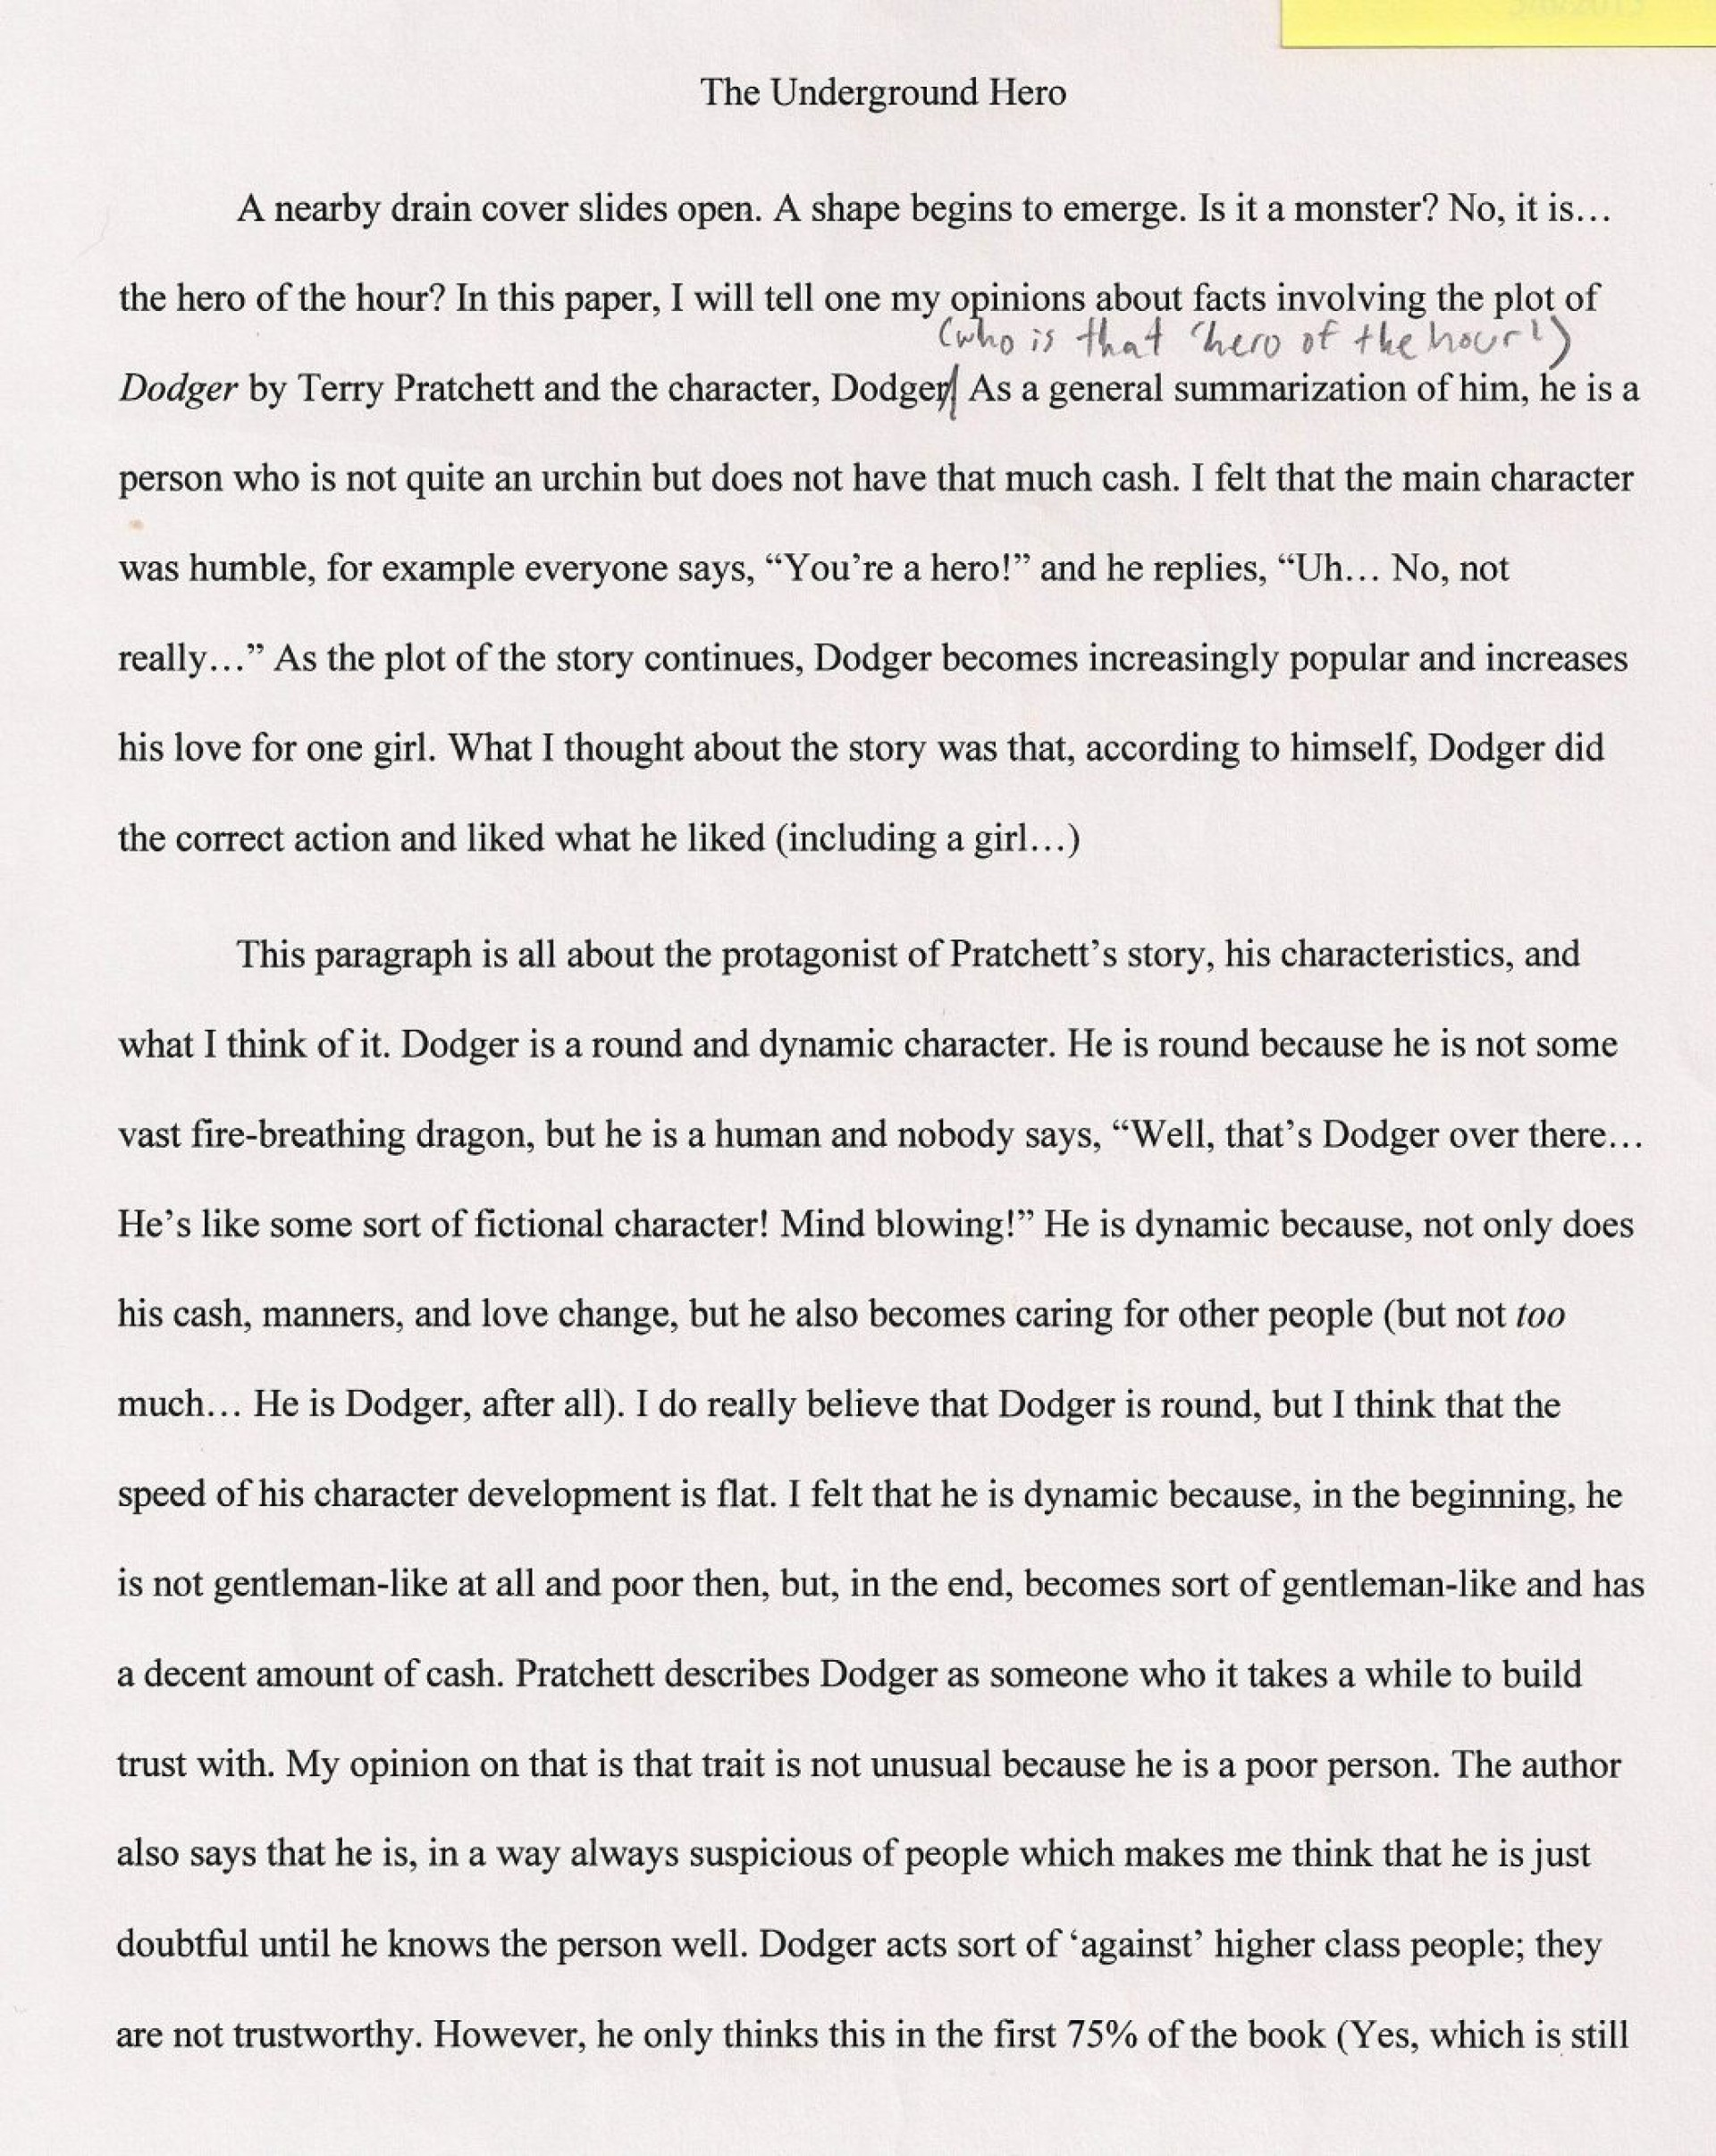 010 Satire Essay Global Warming On Heroes My Hero Essays How To Write An Argumentative The Undergro Persuasive About Study Mode Good Paper 1048x1317 Beautiful Examples Gun Control Questions Ideas 1920